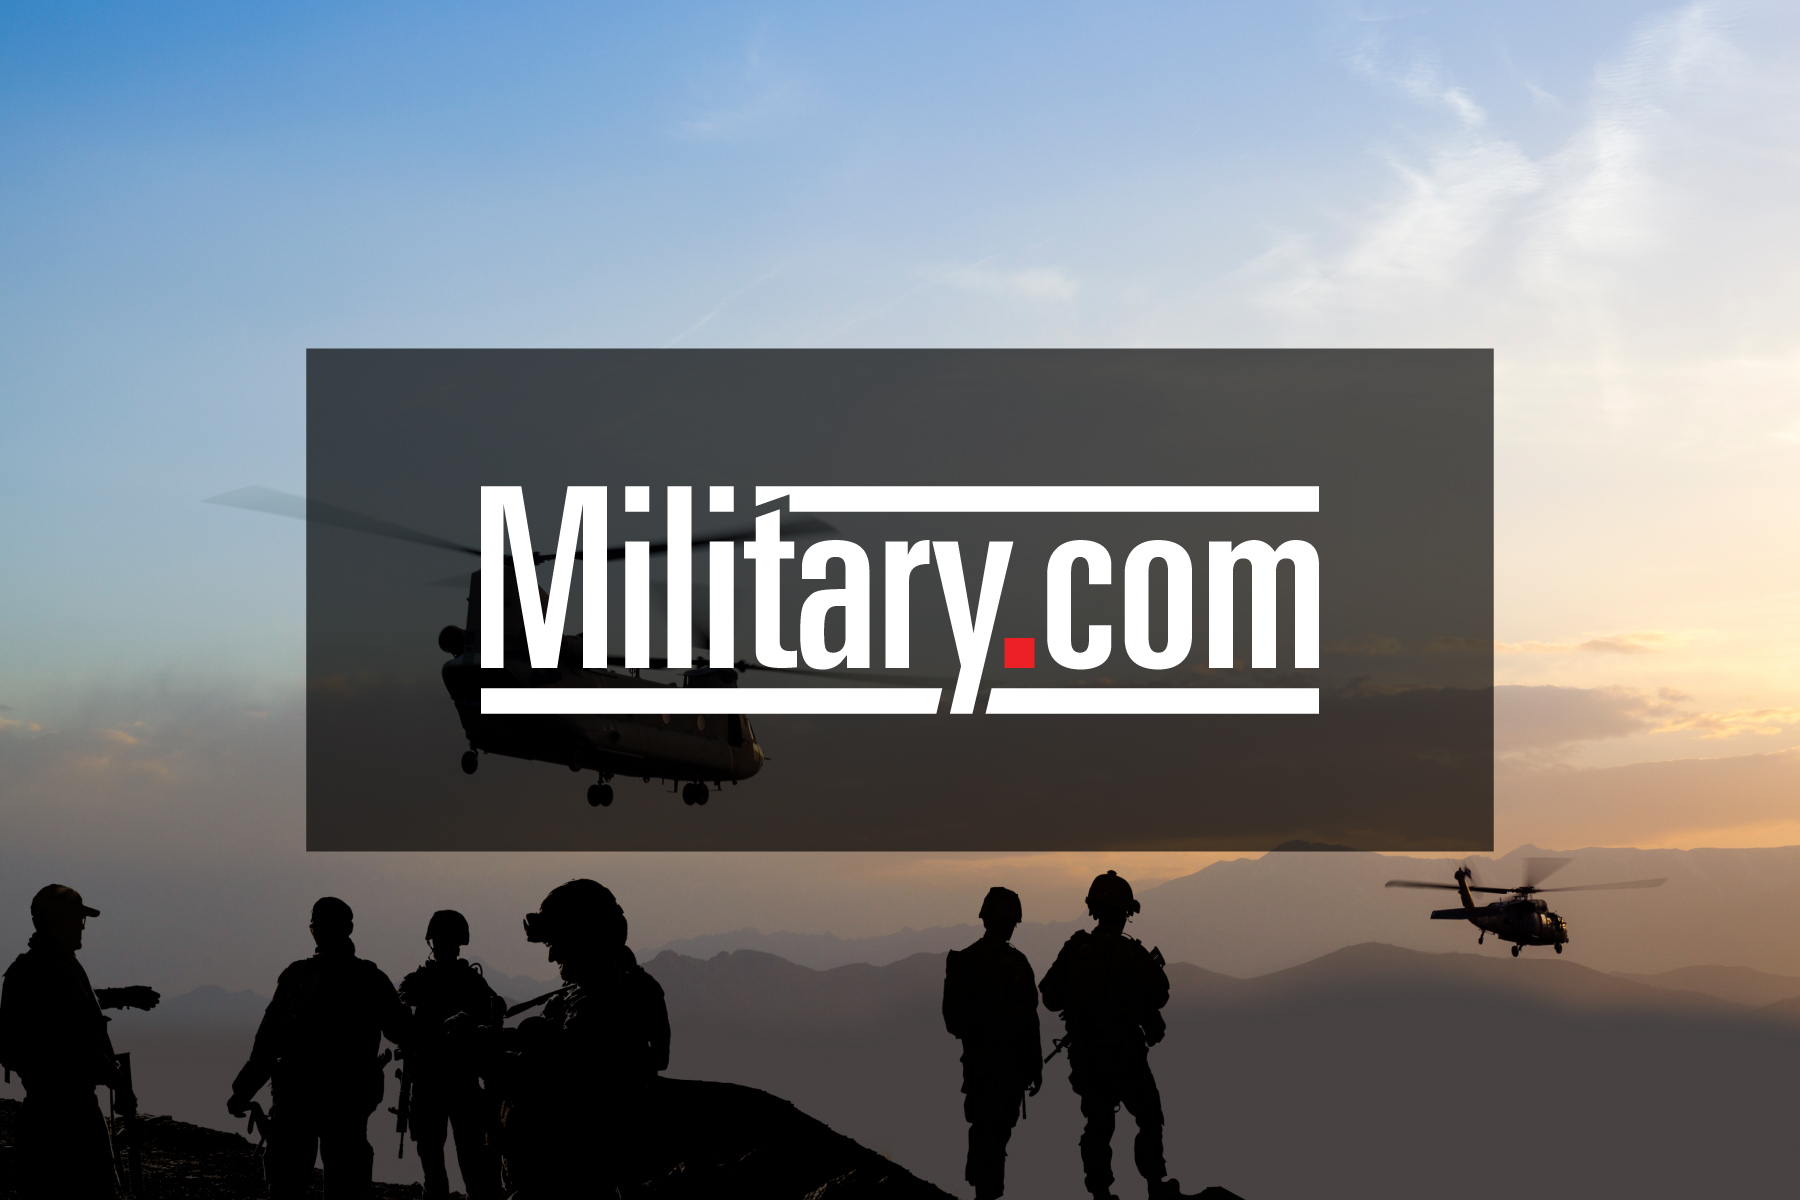 A Humpback whale off the coast of Mexico.